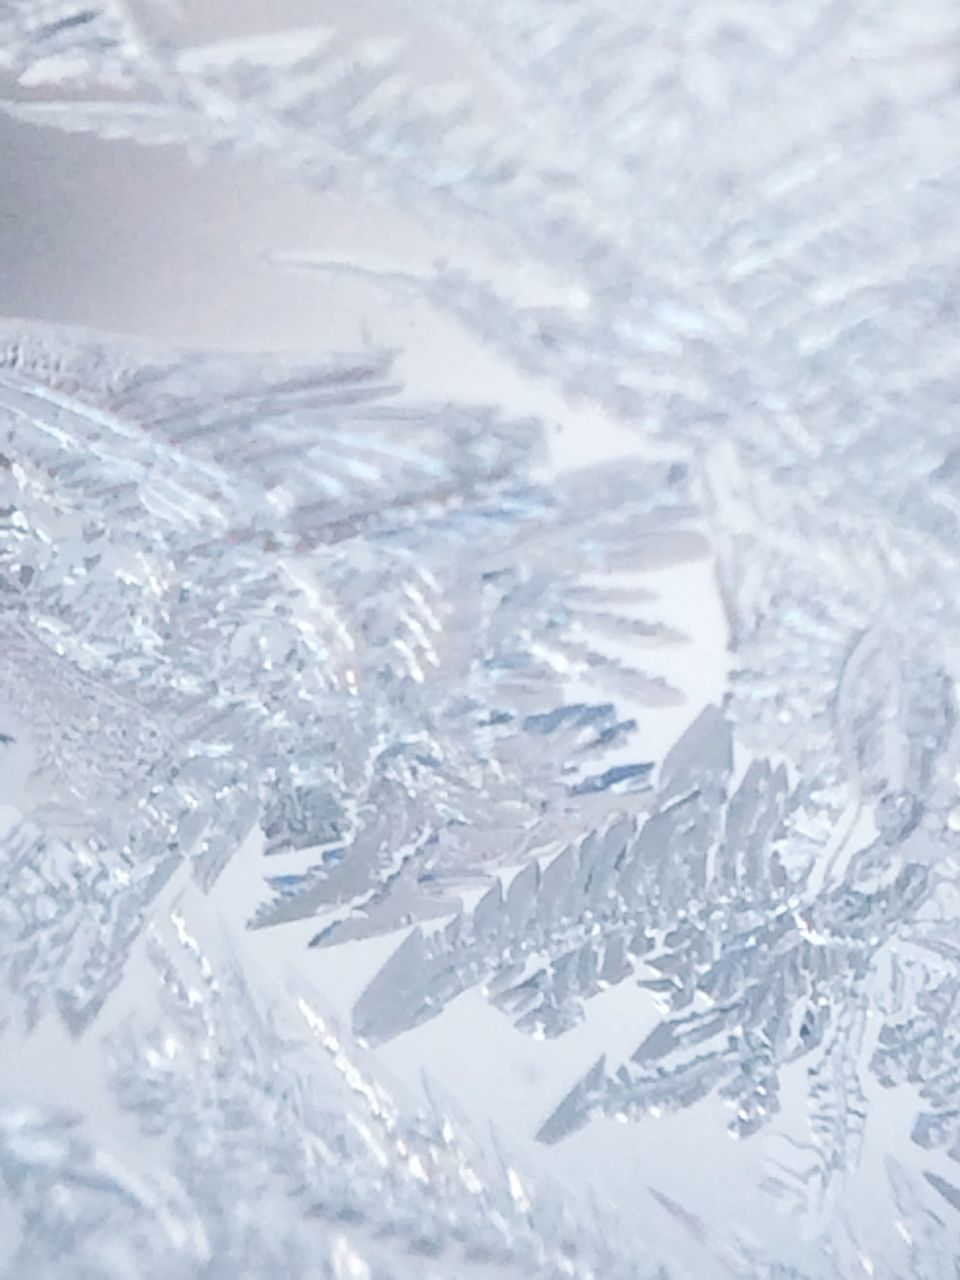 snow, cold temperature, winter, no people, white color, backgrounds, ice, frozen, full frame, close-up, ice crystal, snowflake, indoors, day, nature